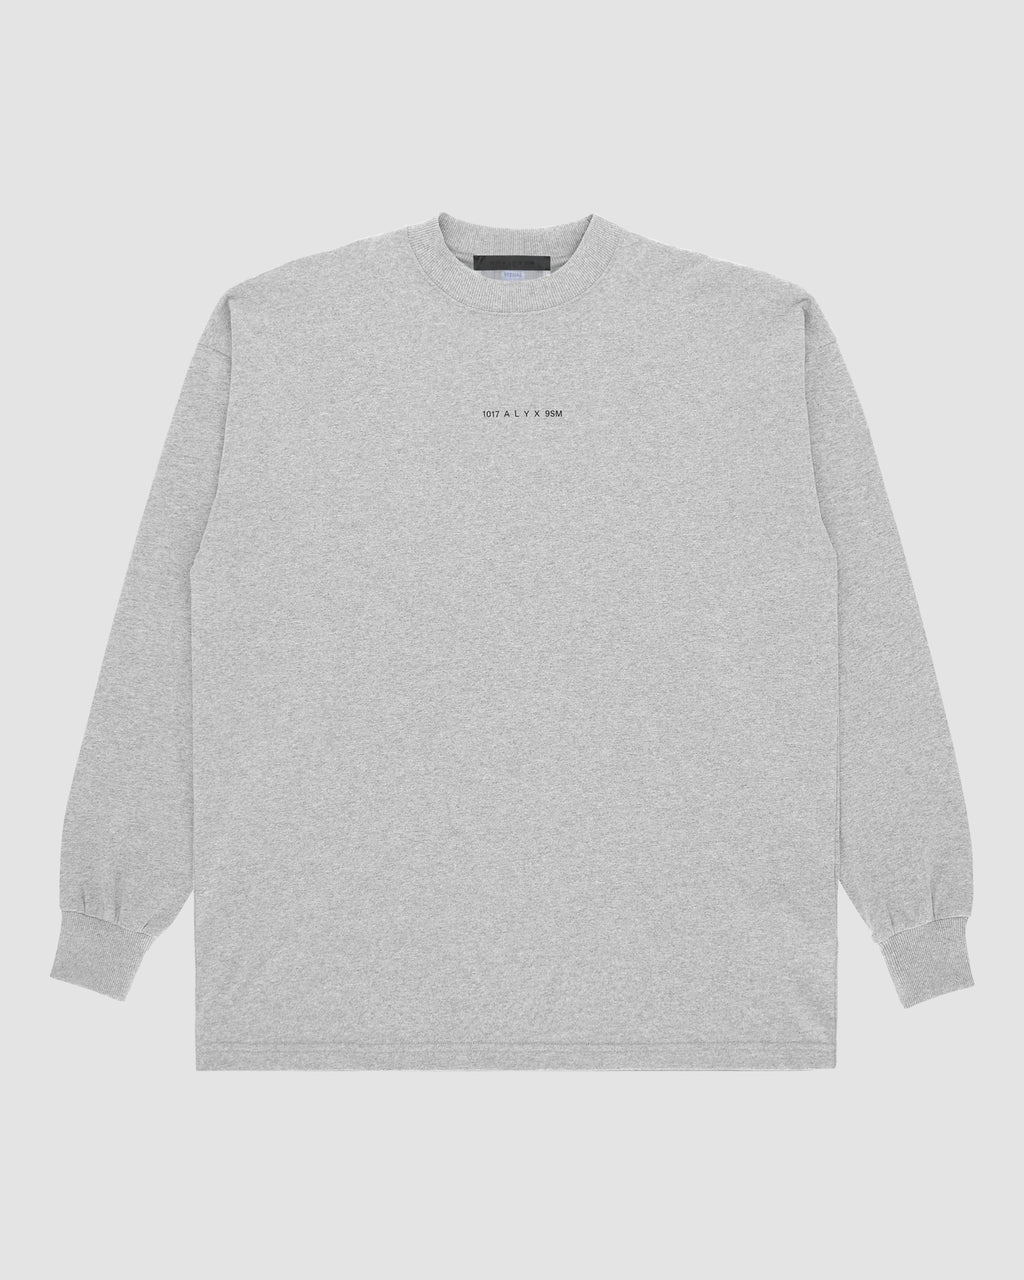 1017 ALYX 9SM | LOGO LS TEE | T-Shirt | F19, Grey, TESTINTEGRATION, Visual